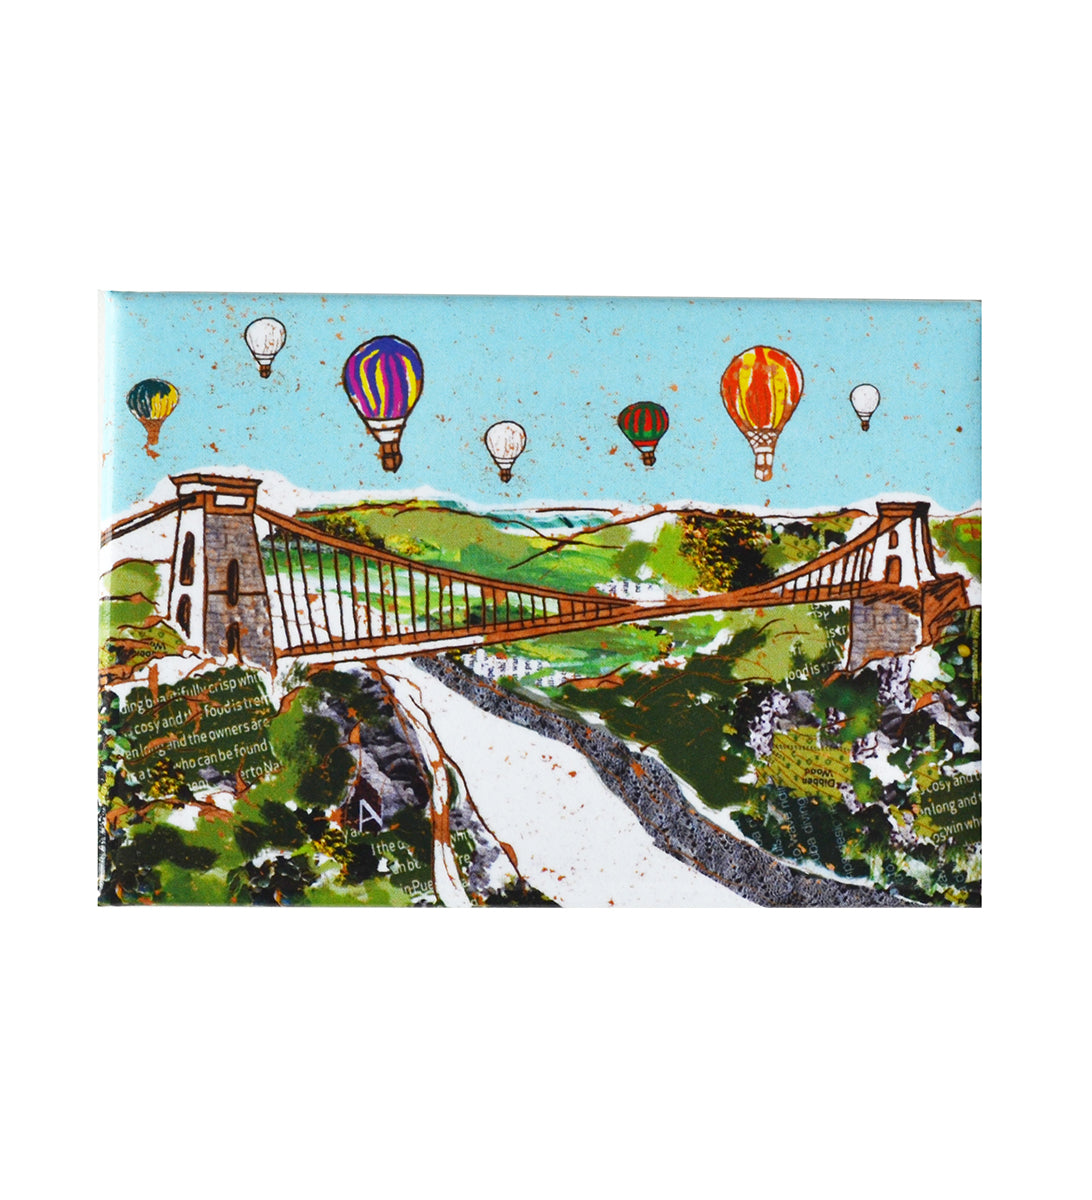 Emmeline Simpson Fridge Magnet - Balloons Over the Bridge